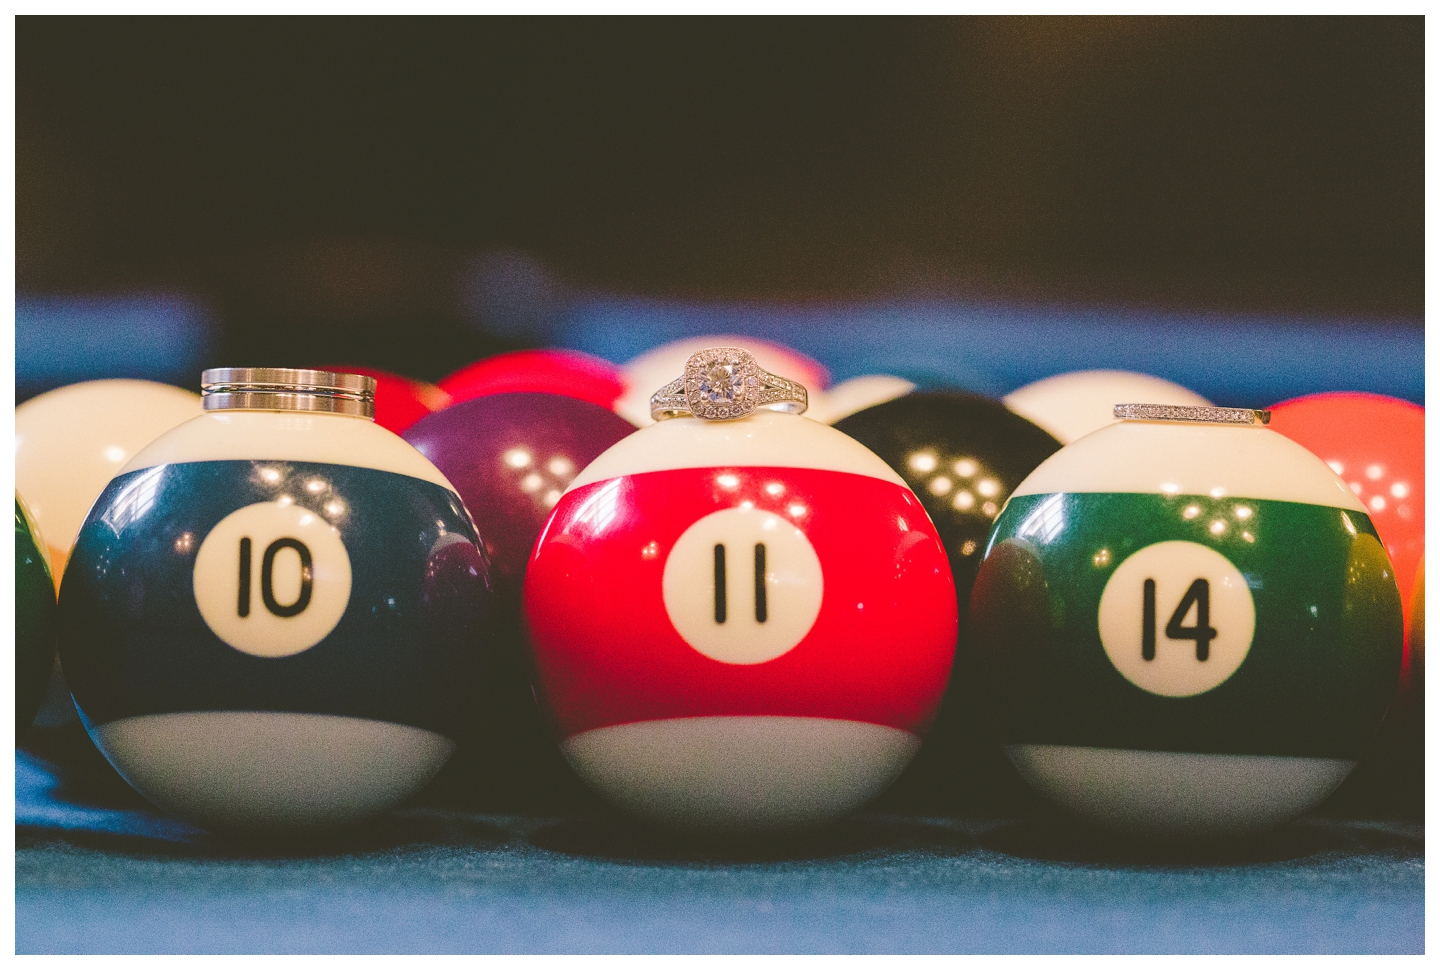 Pool balls with wedding rings